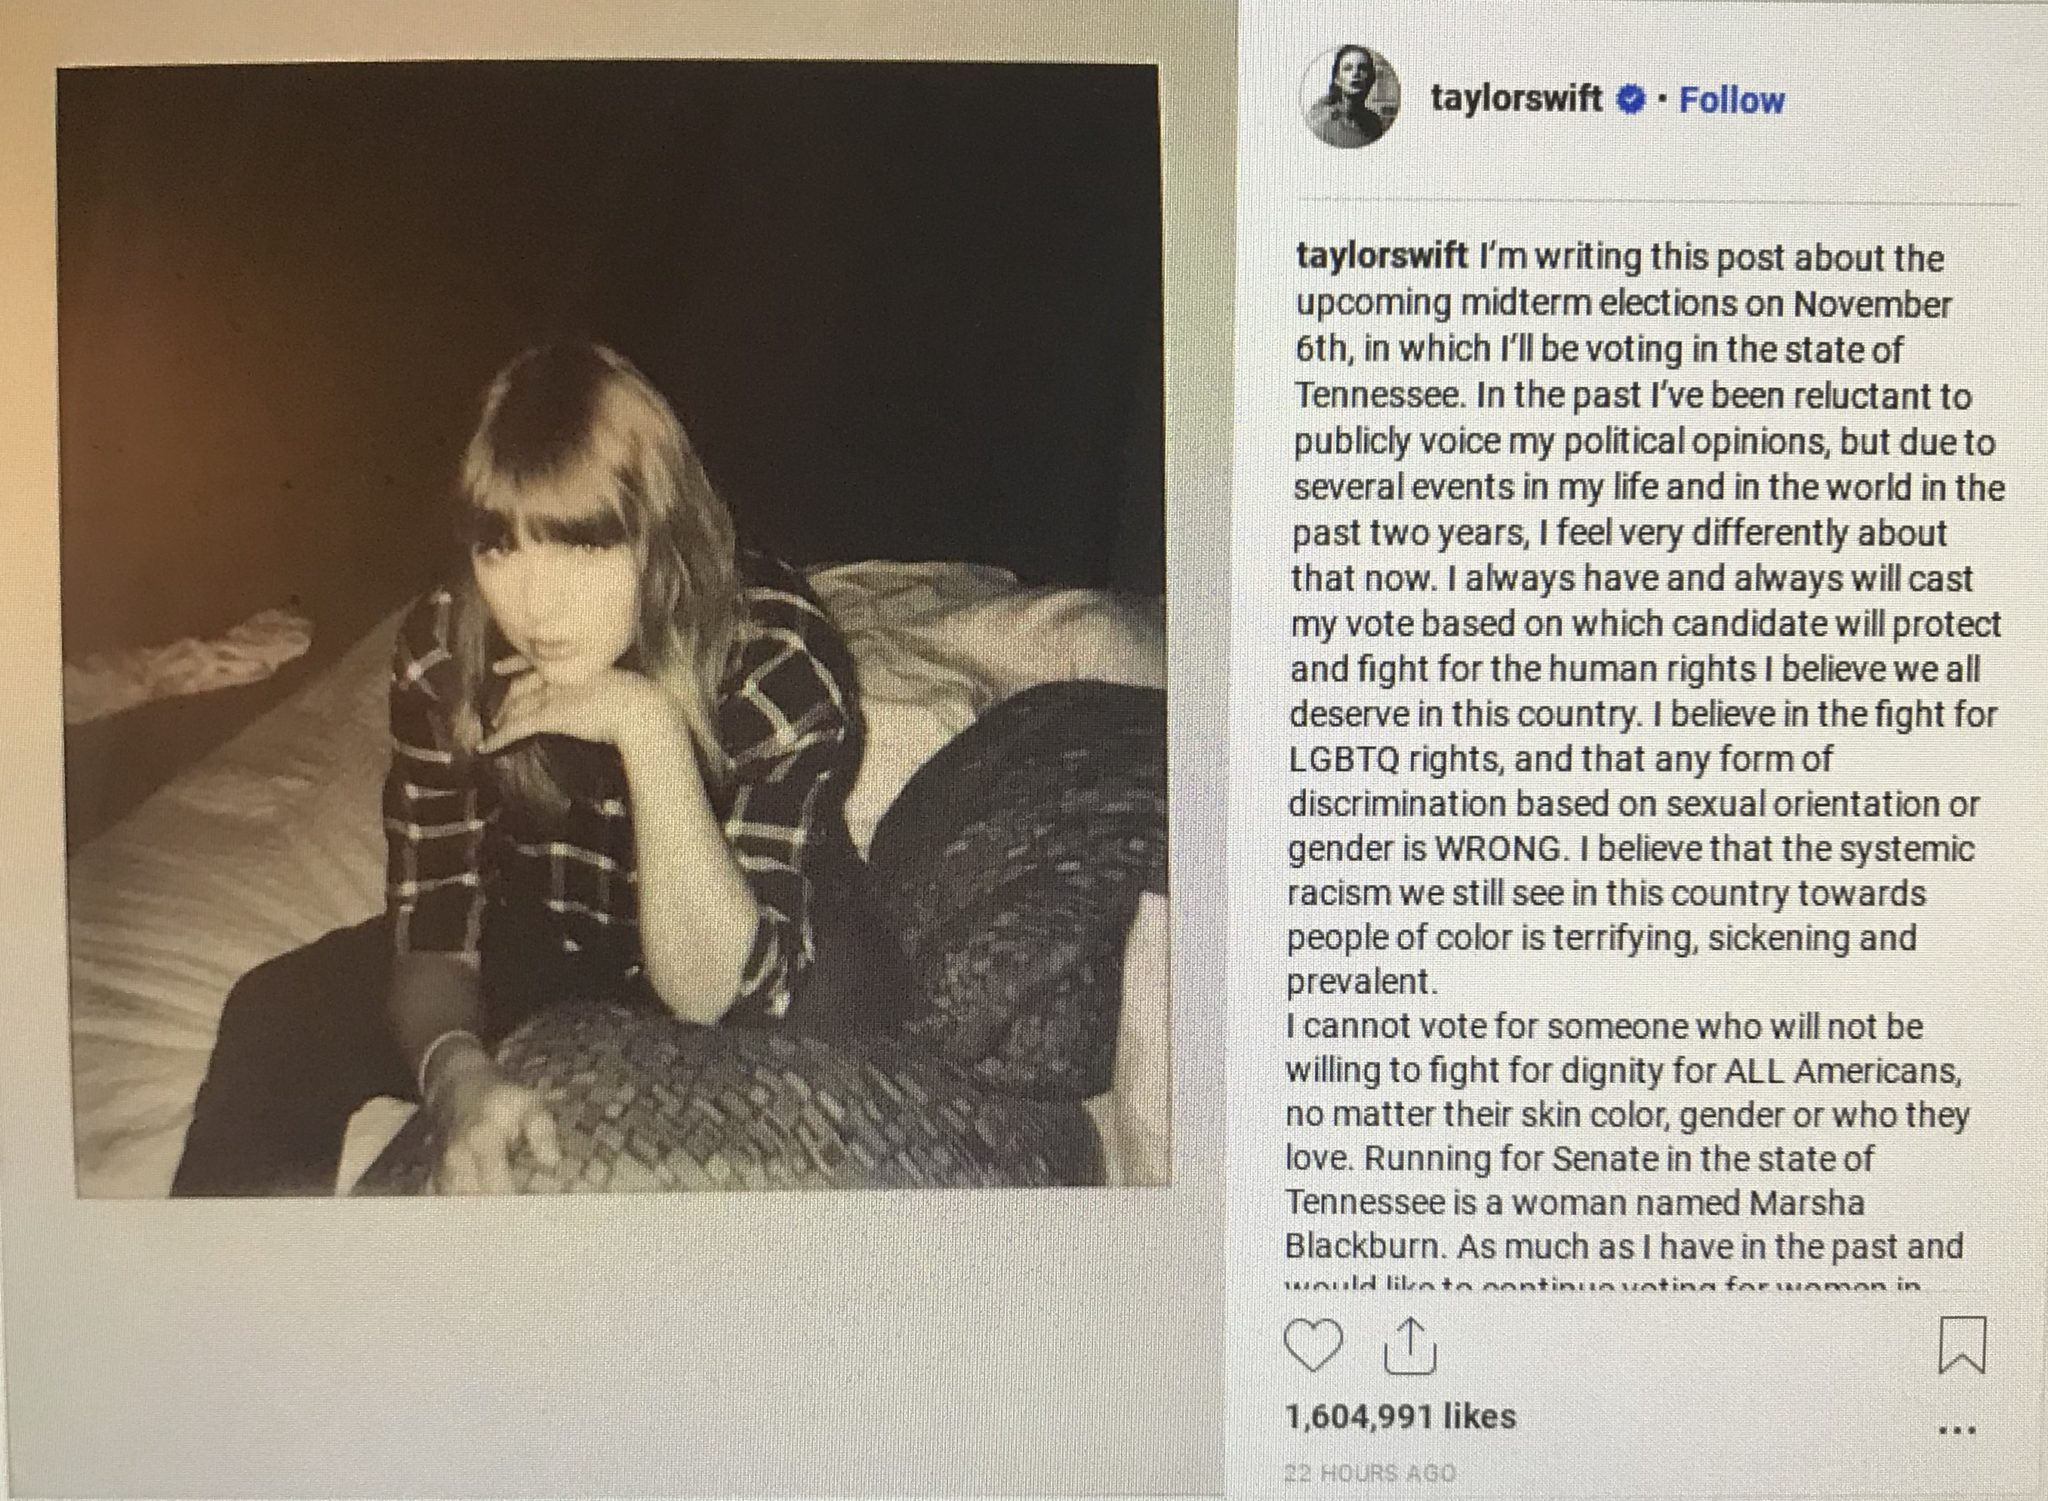 Taylor Swift Instagram political statement. Photo credit to US4Trump with public instagram profile.